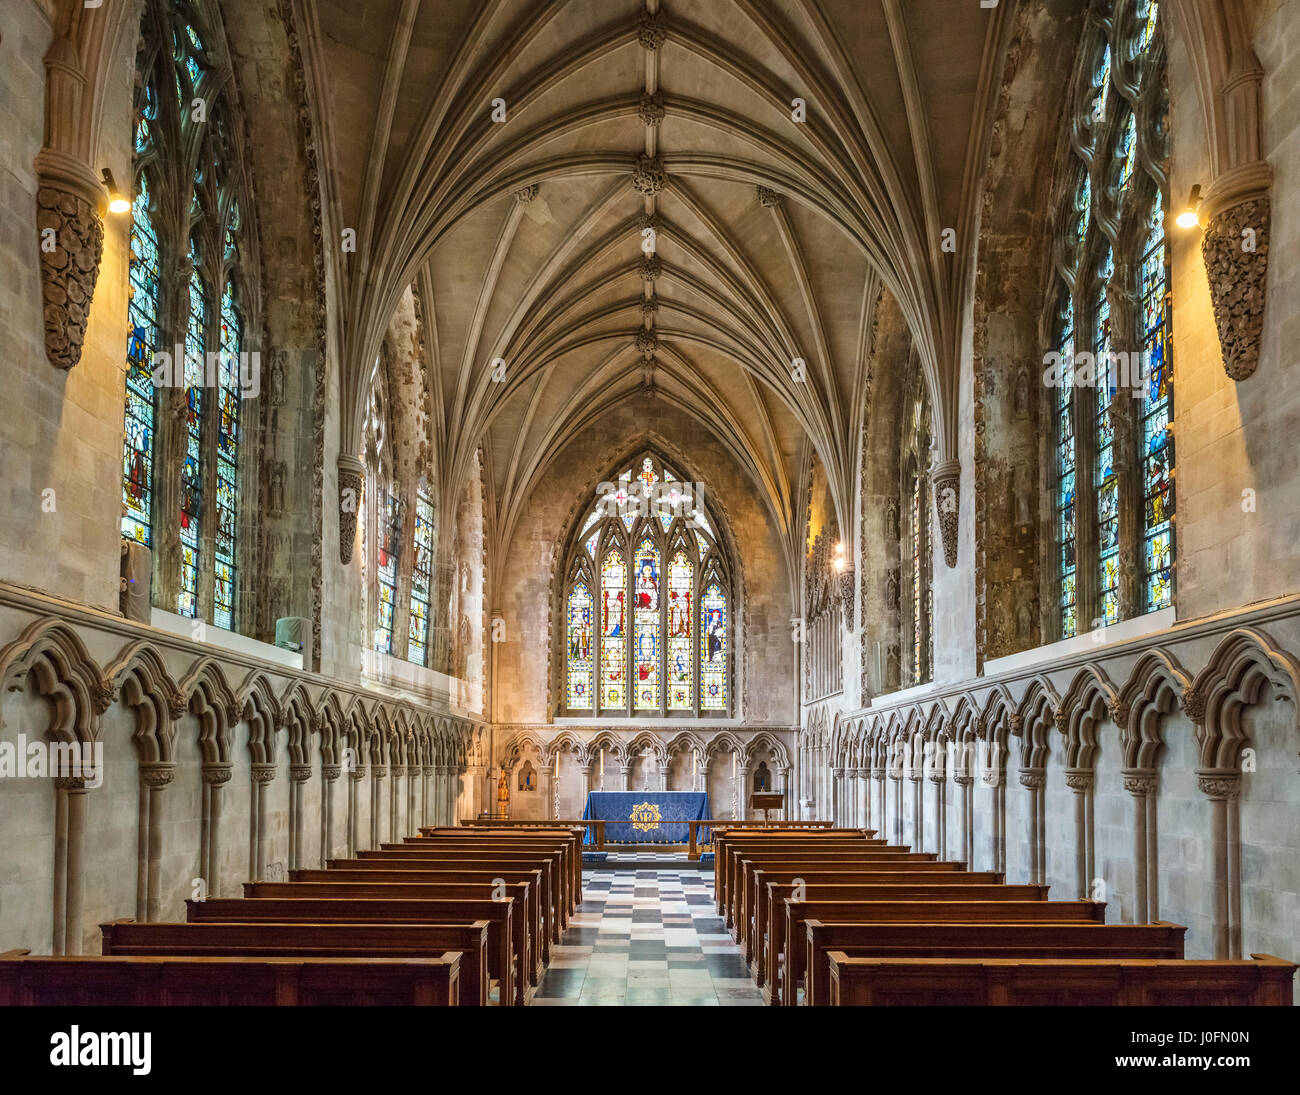 St Albans Cathedral. Medieval 14th century Lady Chapel in the Cathedral and Abbey Church of St Alban, St Albans, - Stock Image